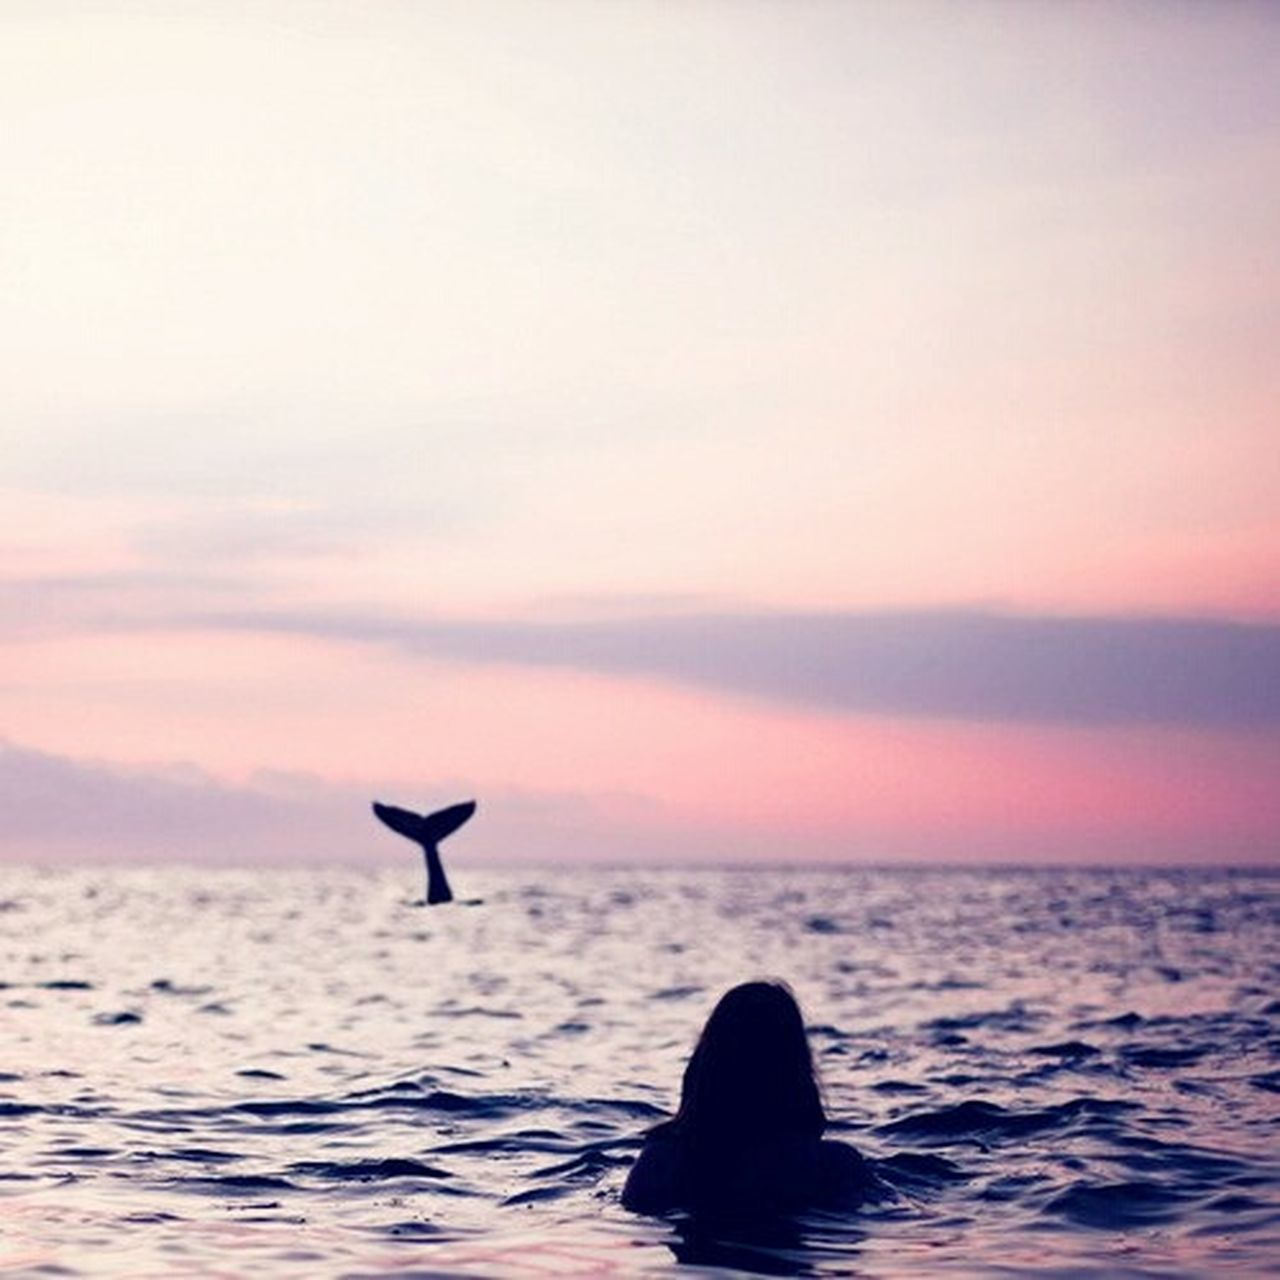 one animal, sea, sunset, animal themes, animals in the wild, animal wildlife, water, silhouette, animal, sea life, whale, horizon over water, animal fin, nature, swimming, beauty in nature, outdoors, aquatic mammal, humpback whale, scenics, mammal, no people, tail, sky, day